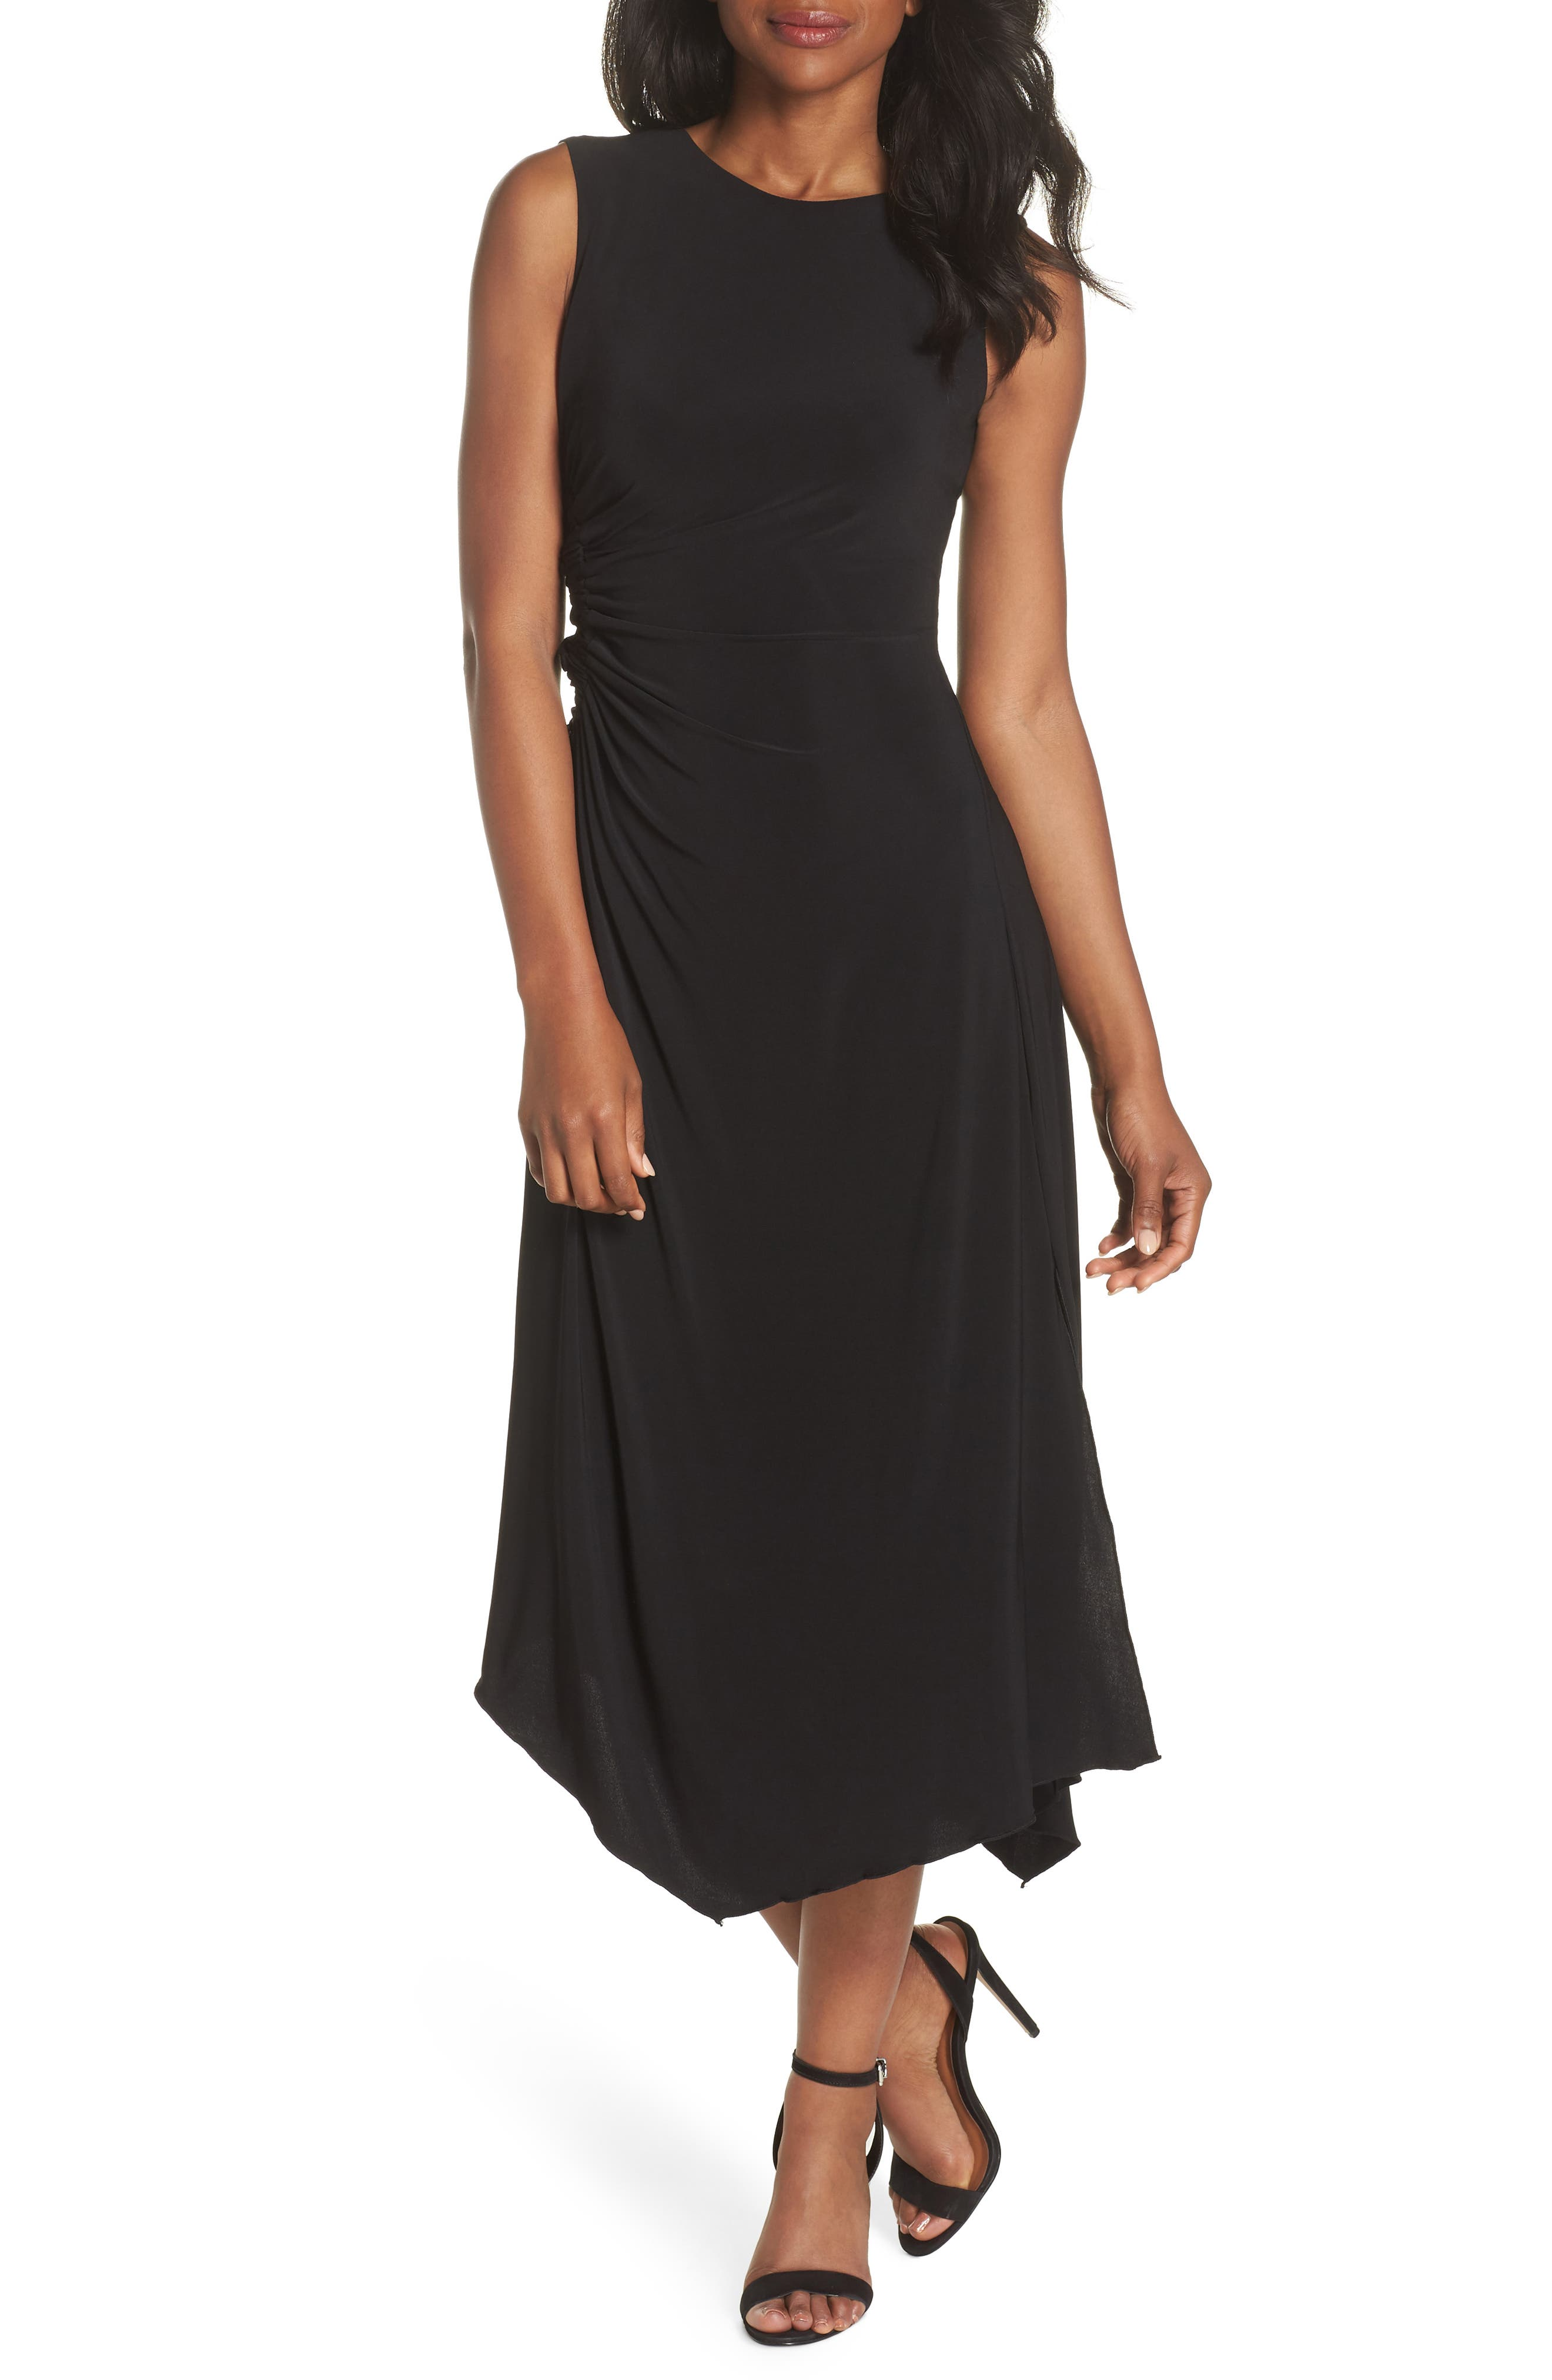 Taylor Dresses Ruched Side Tie Midi Dress